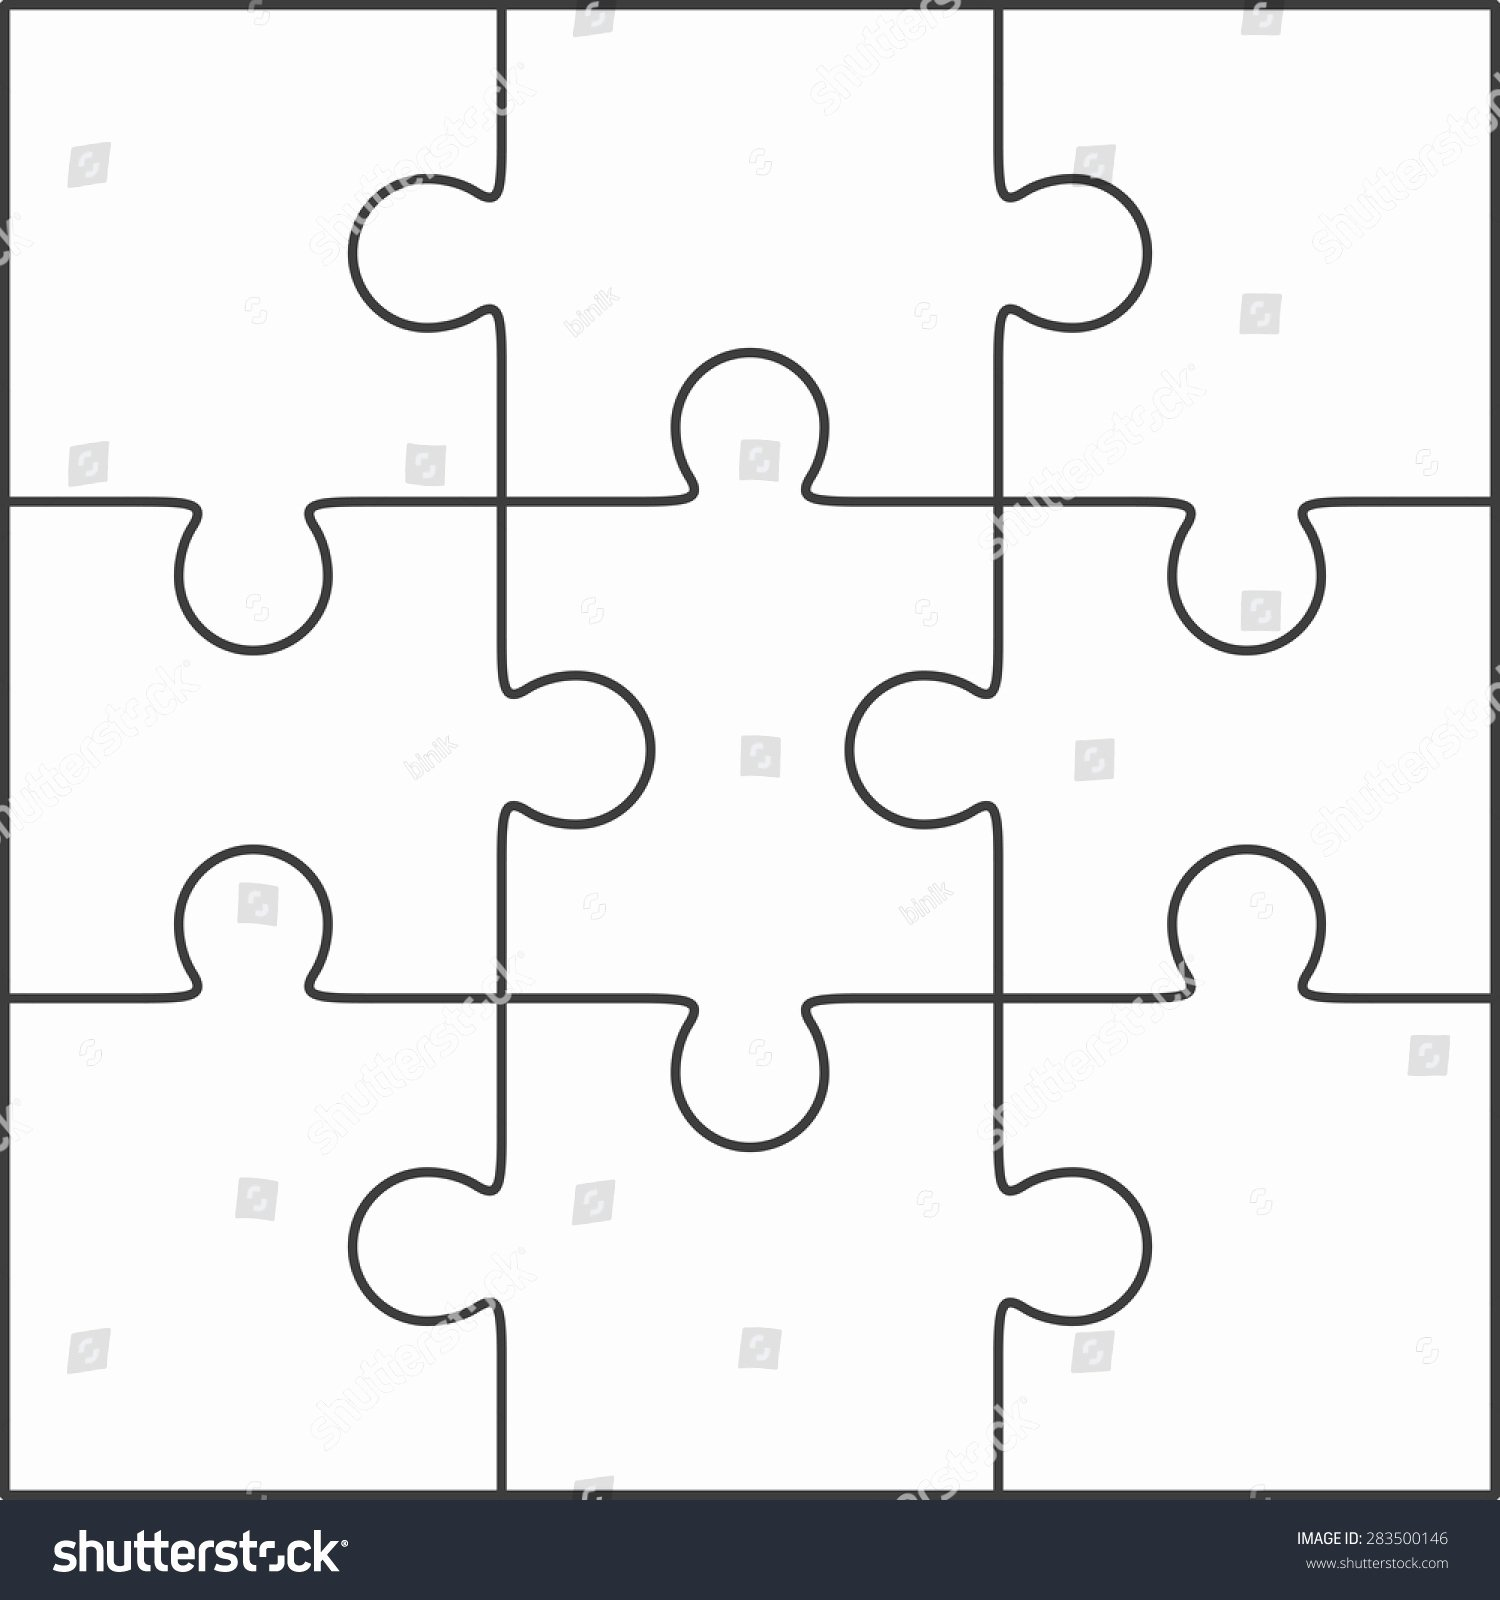 Puzzle Template 9 Pieces New Jigsaw Puzzle Vector Blank Simple Template Stock Vector